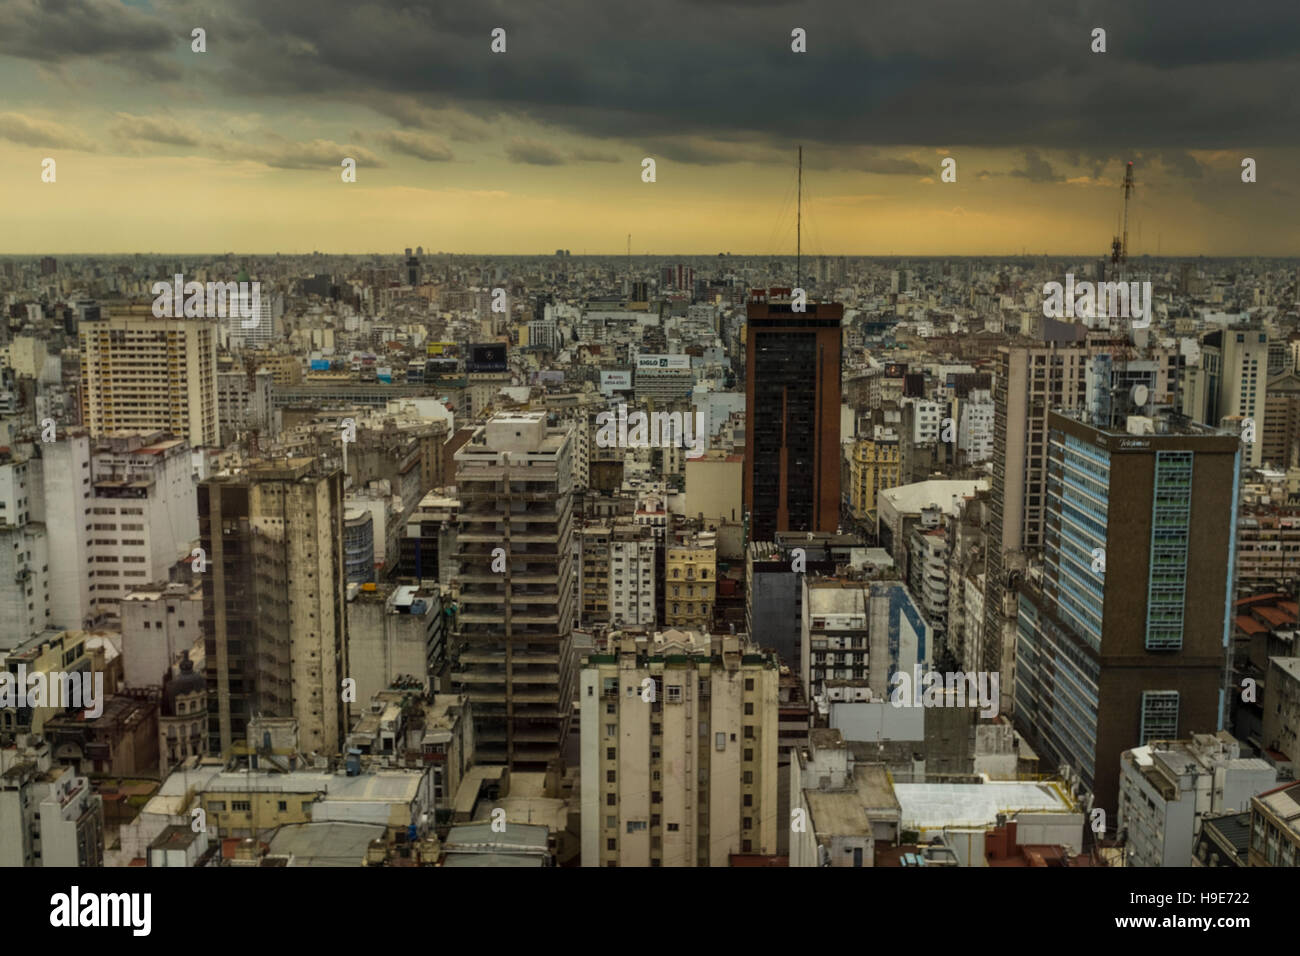 Buenos Aires city. - Stock Image